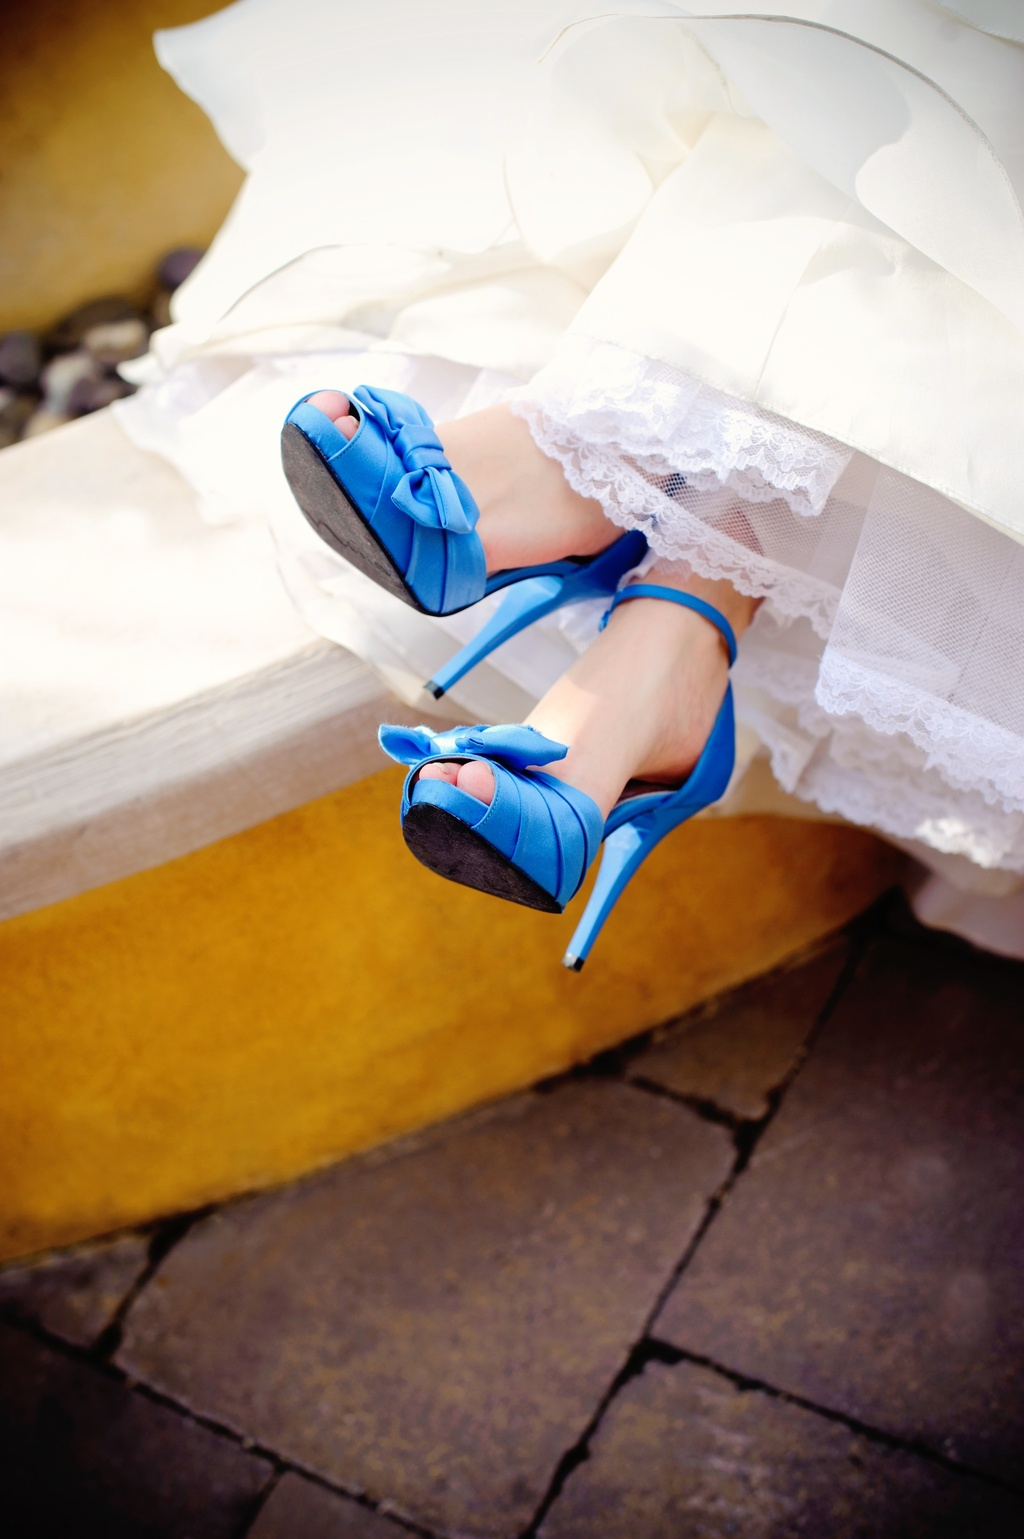 Elegant-real-wedding-with-simple-diy-details-ivory-wedding-dress-with-lace-blue-shoes.full